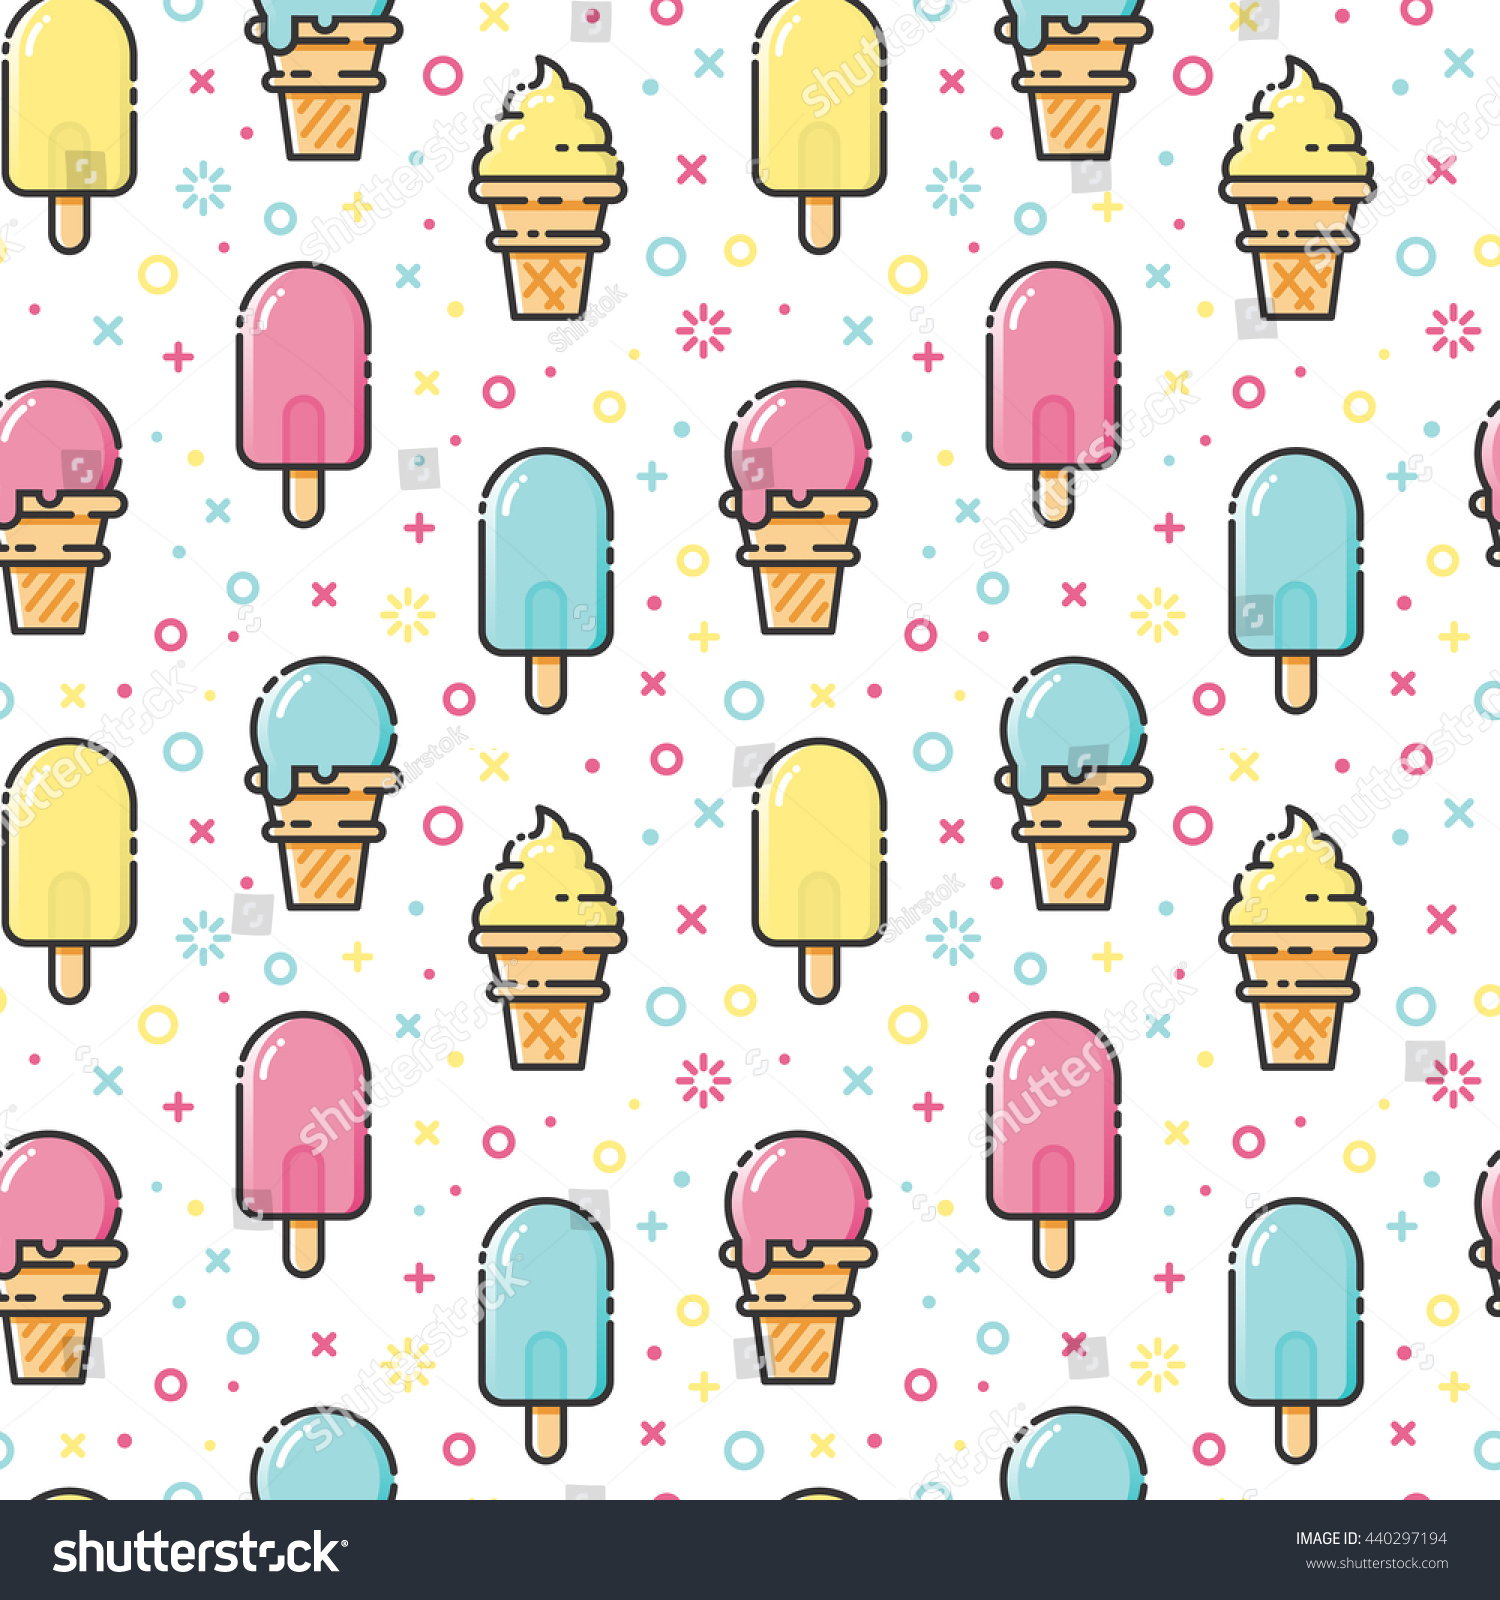 Sweet Ice Cream Flat Colorful Seamless Pattern Vector: Seamless Ice Cream Pattern Stock Vector 440297194